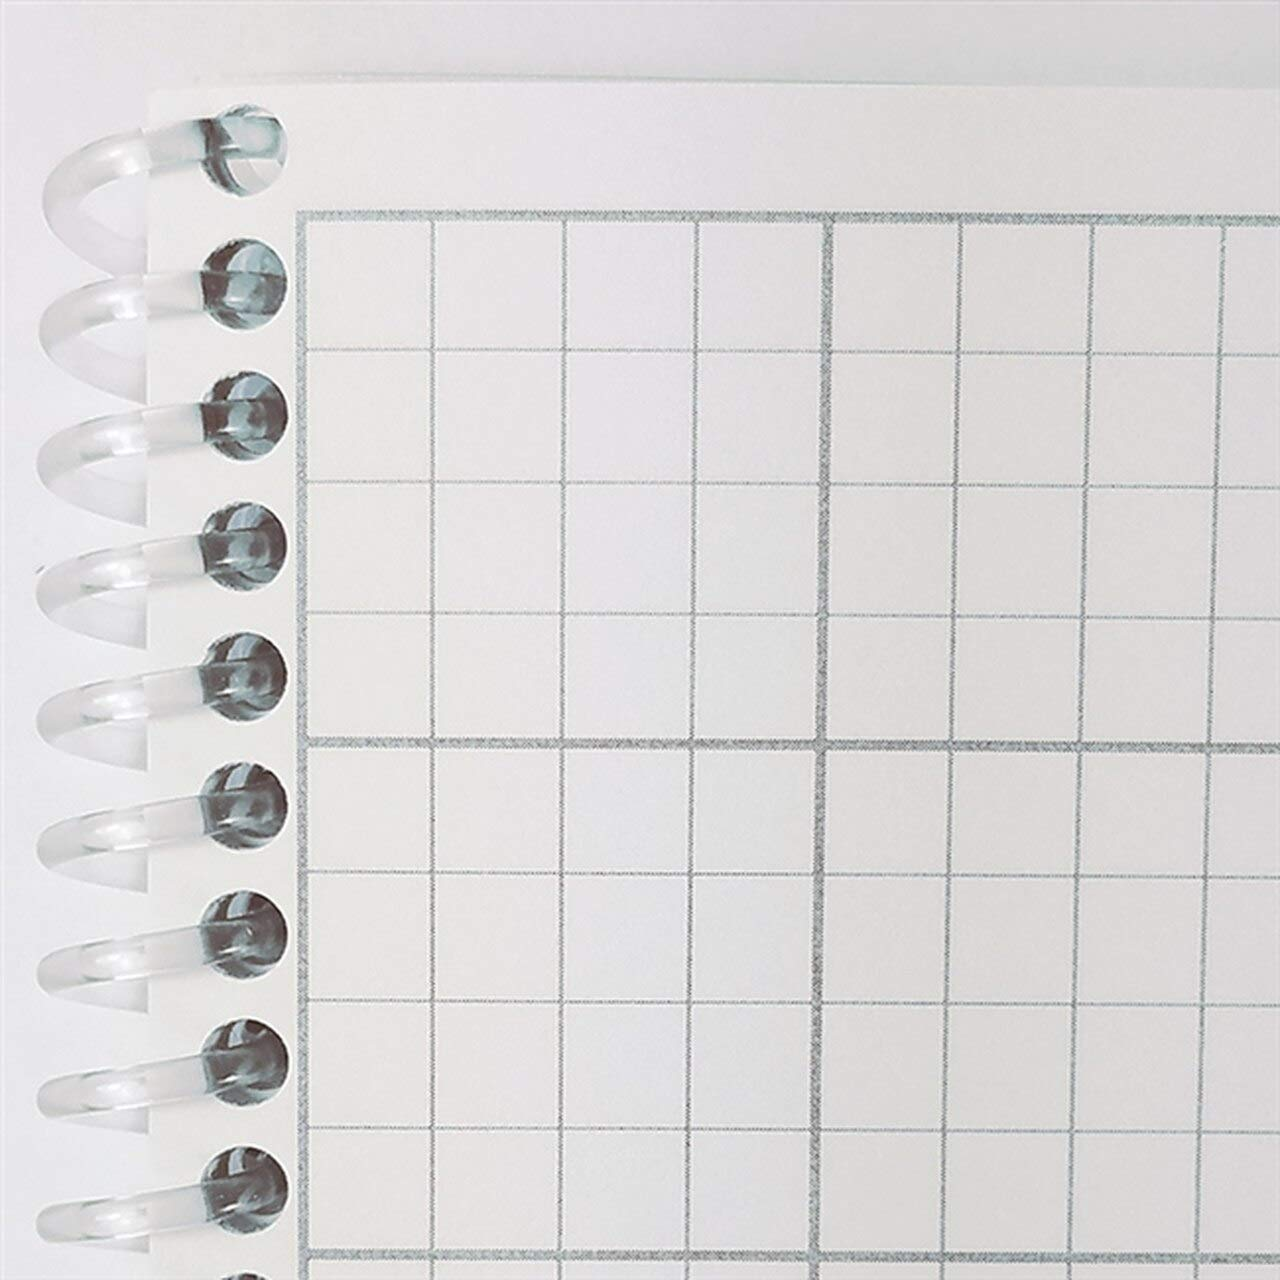 Side Spiral Latex-Free Engineering Grid 5.5 x 8.5 100 Pages Cleanroom Notebook